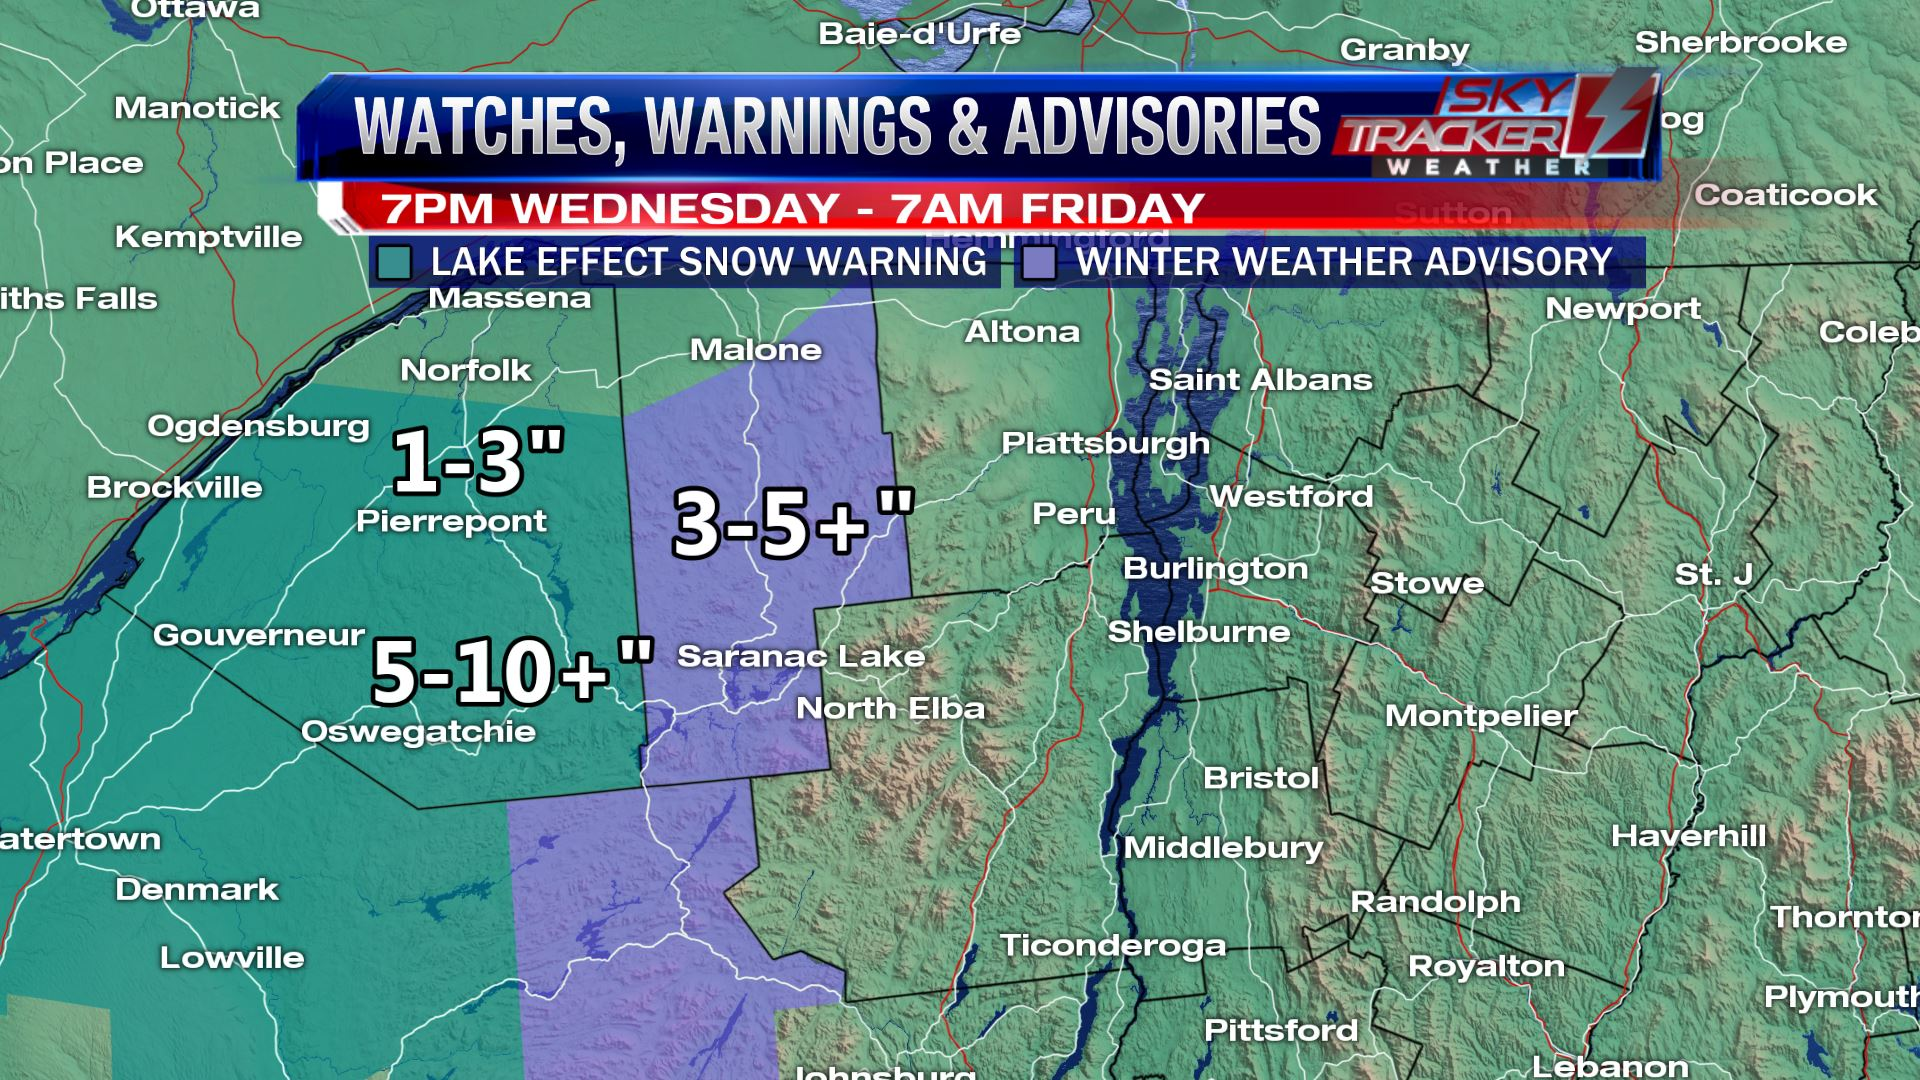 Watches Warnings and Advisories December 6 and 7 2017